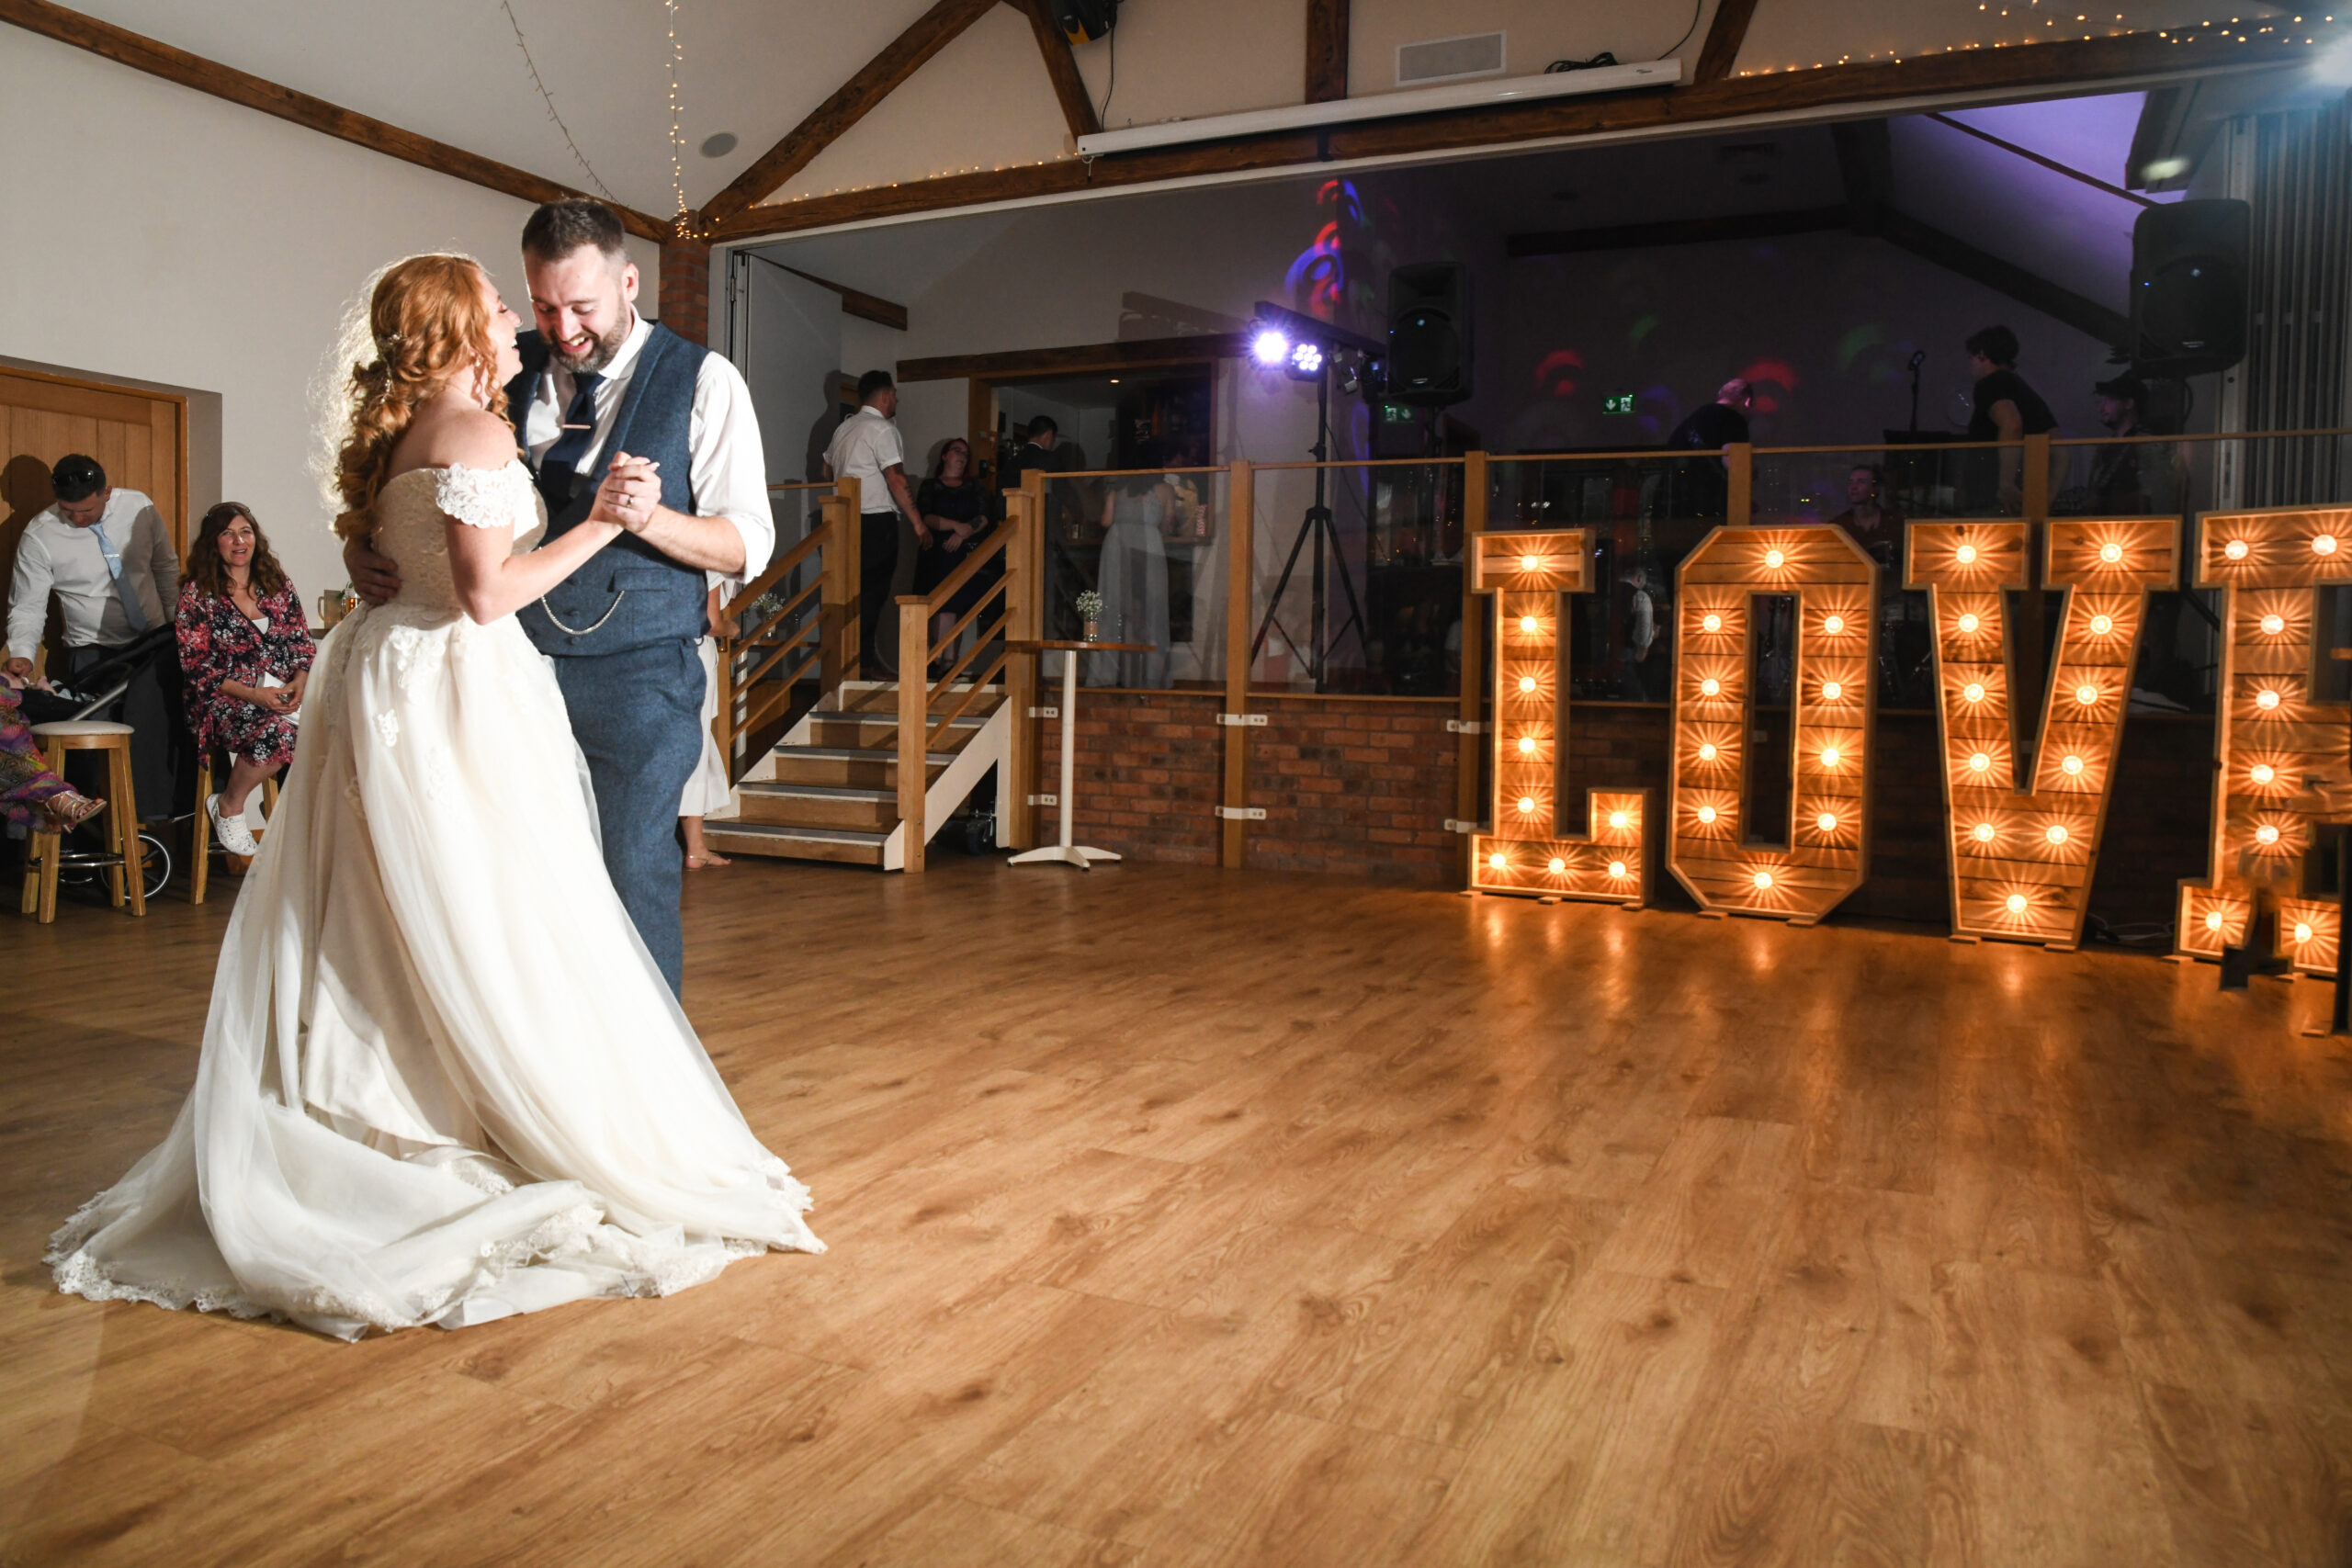 The First Dance at Wootton Park by The Wedding Photo Company